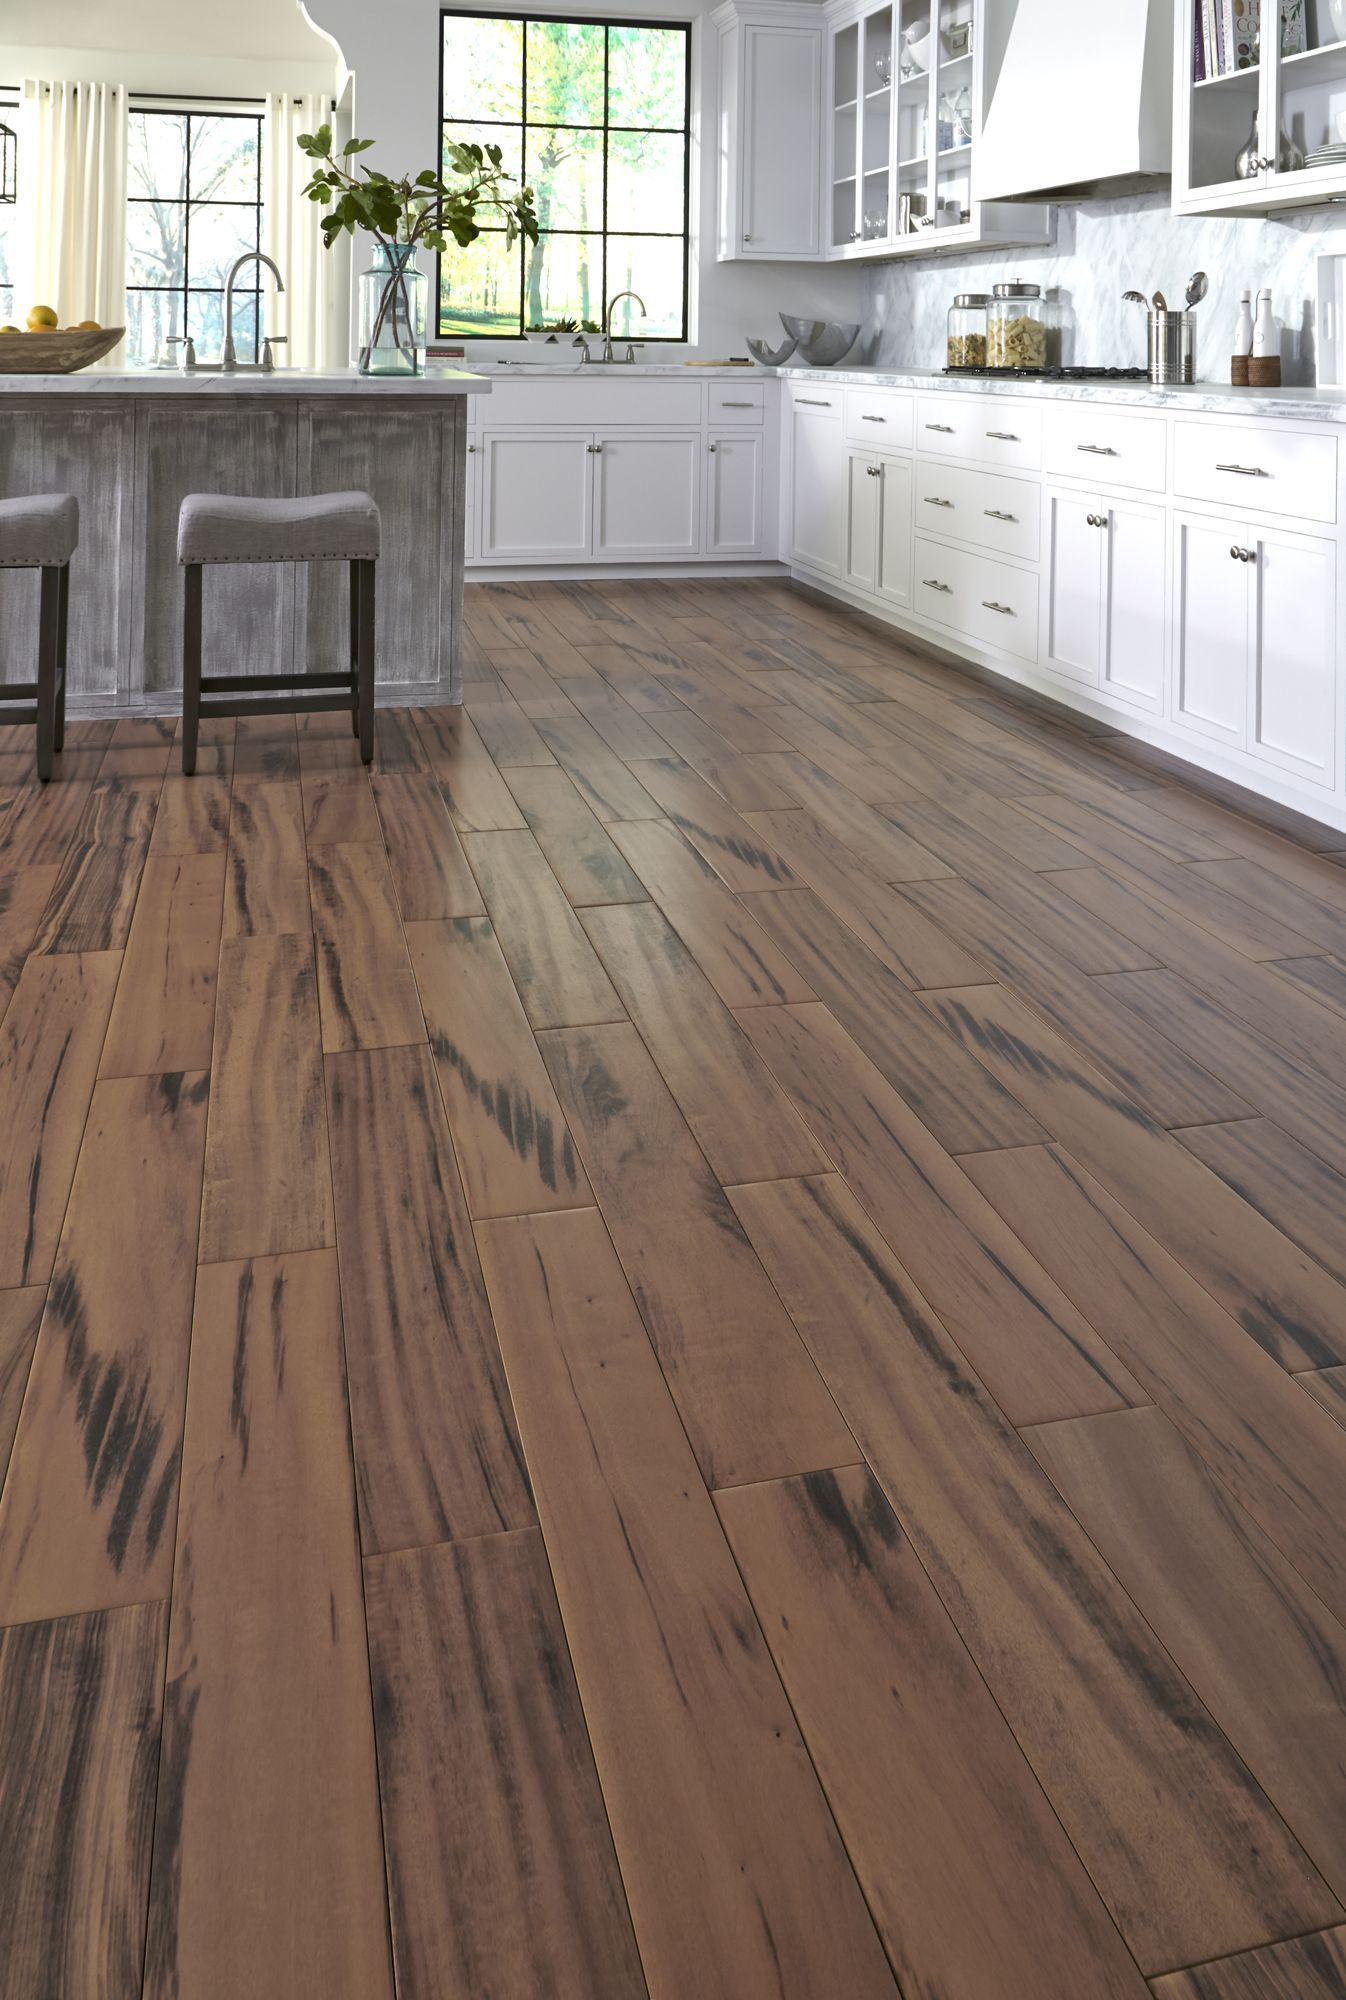 Waterproof Laminate FlooringThe Speediest Increasing